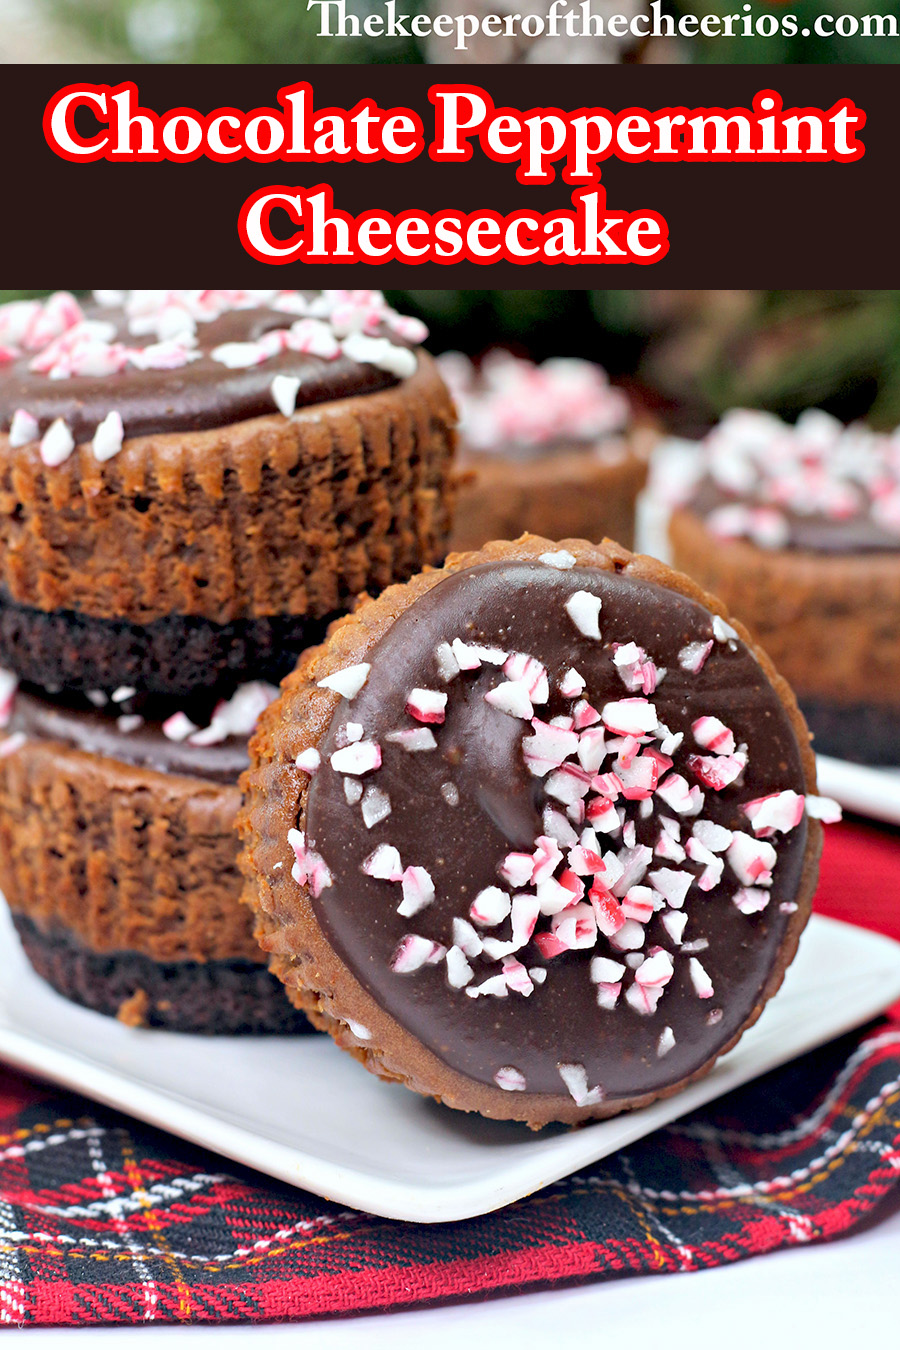 Chocolate-Peppermint-cheesecake-pnn